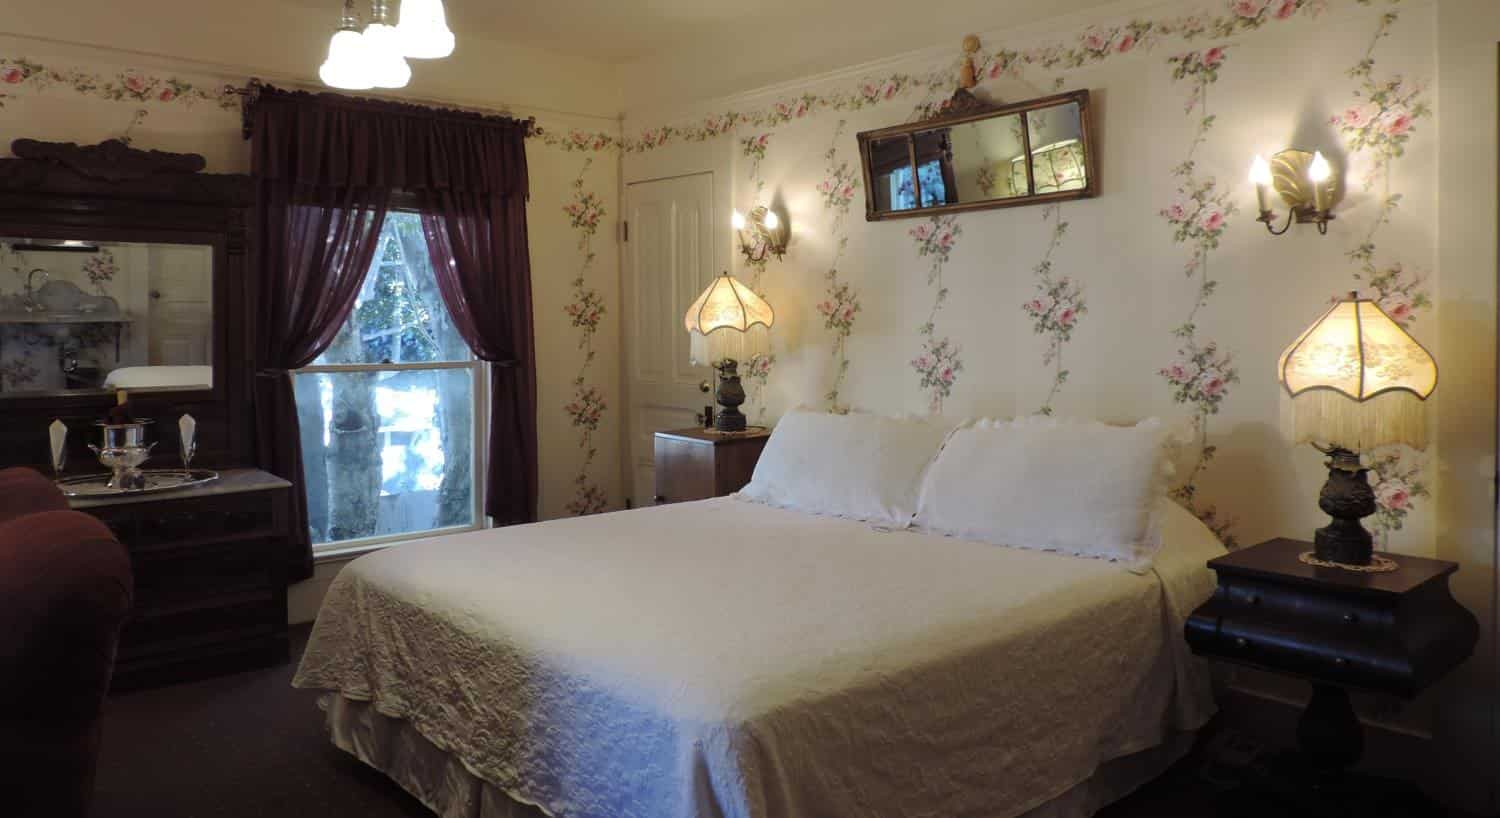 Guest room with ivory floral papered walls, window with eggplant colored curtains, and nightstands with lamps